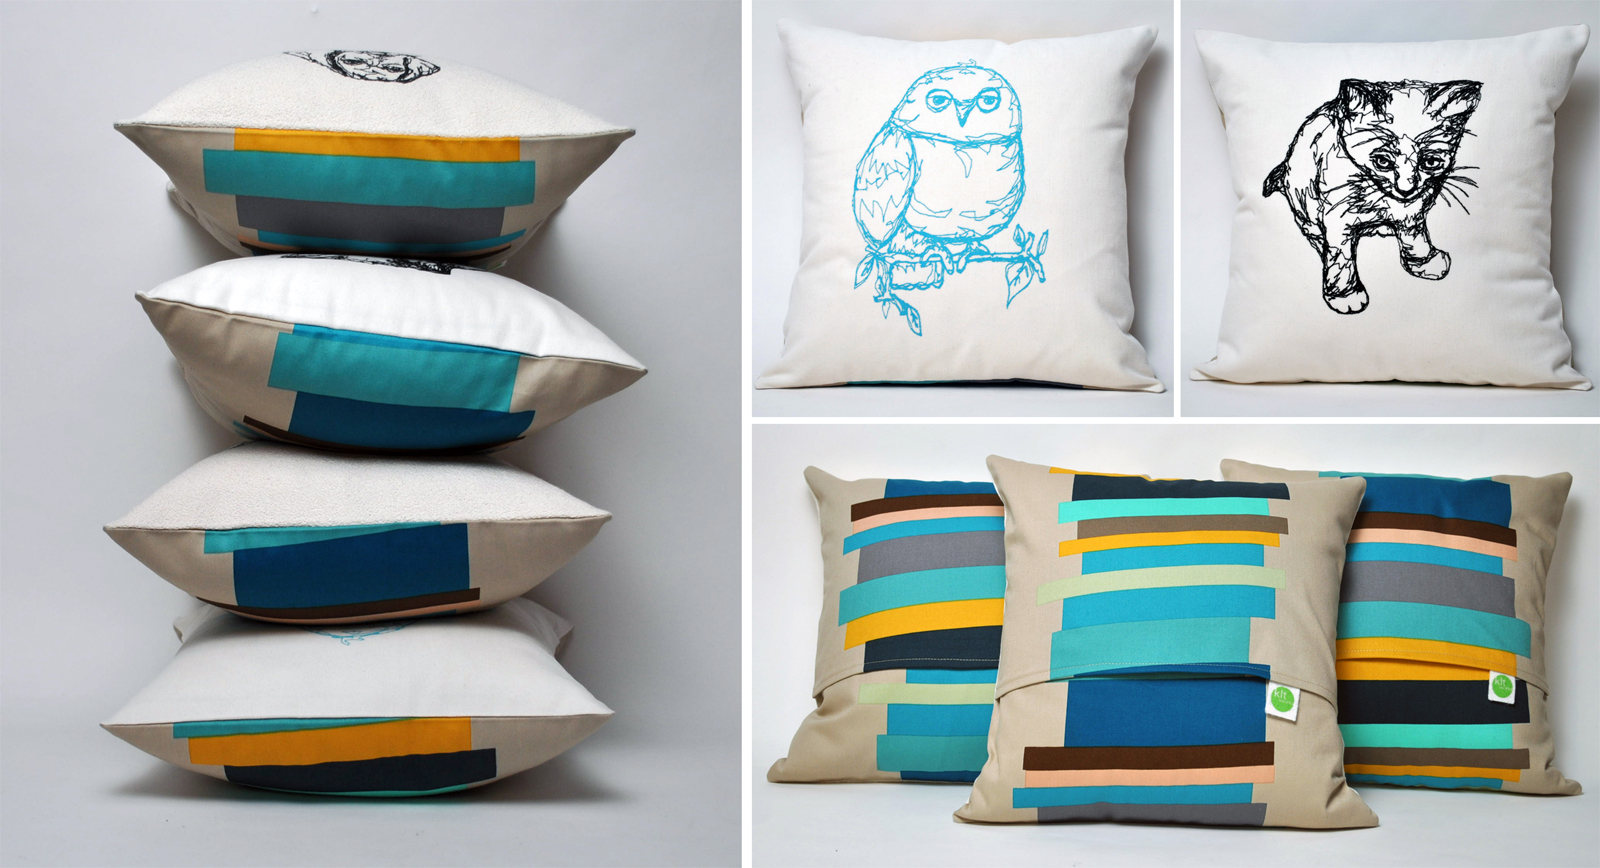 how to set up bed with european pillows